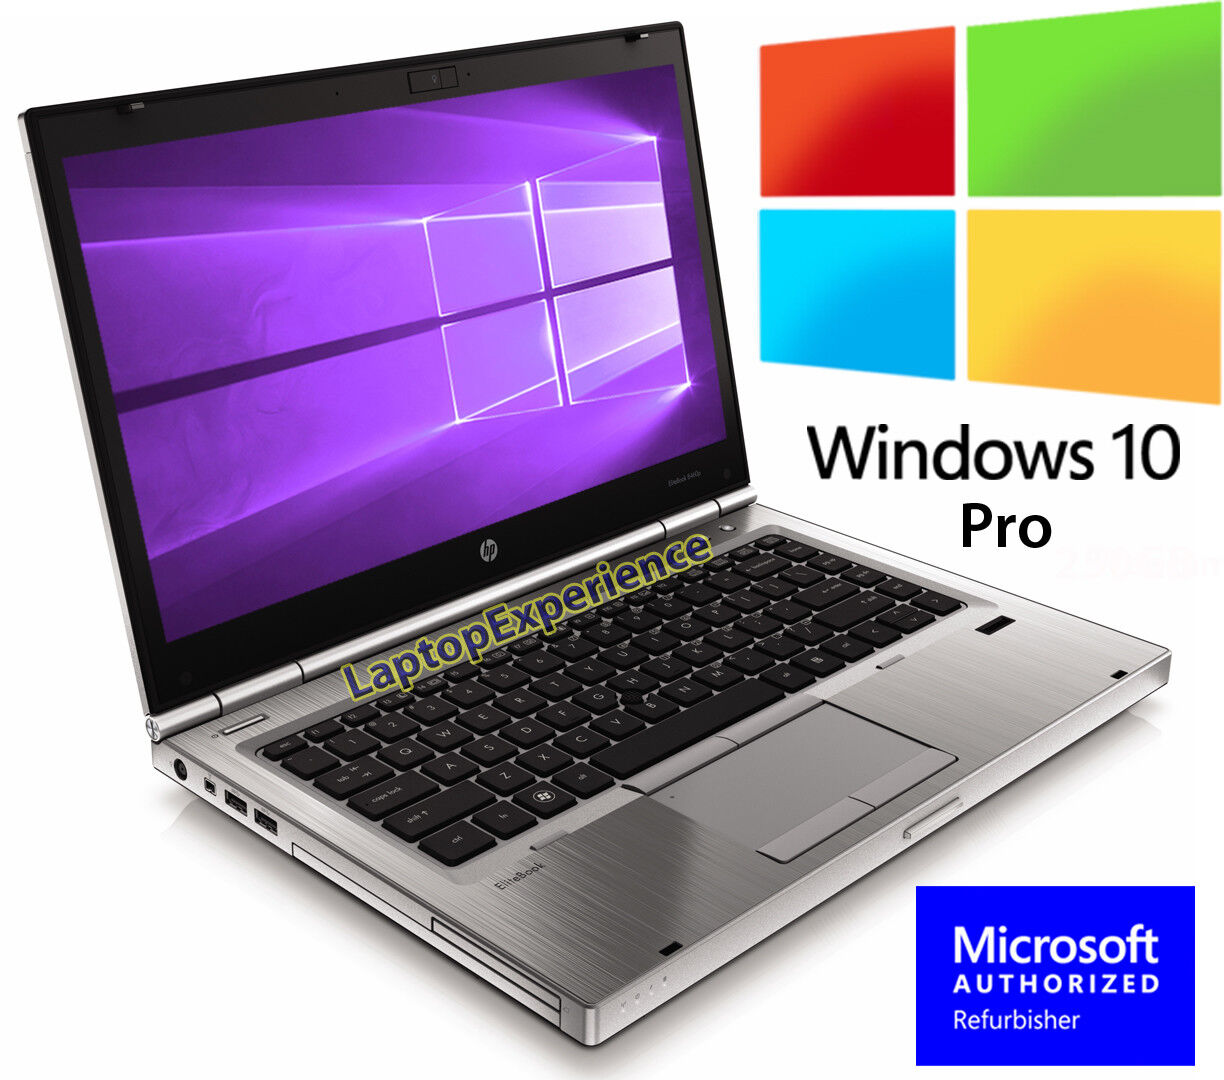 Laptop Windows - HP PRO LAPTOP ELITEBOOK 8460P INTEL i7 4GB 320GB HD DVD WiFi WINDOWS 10 WEBCAM